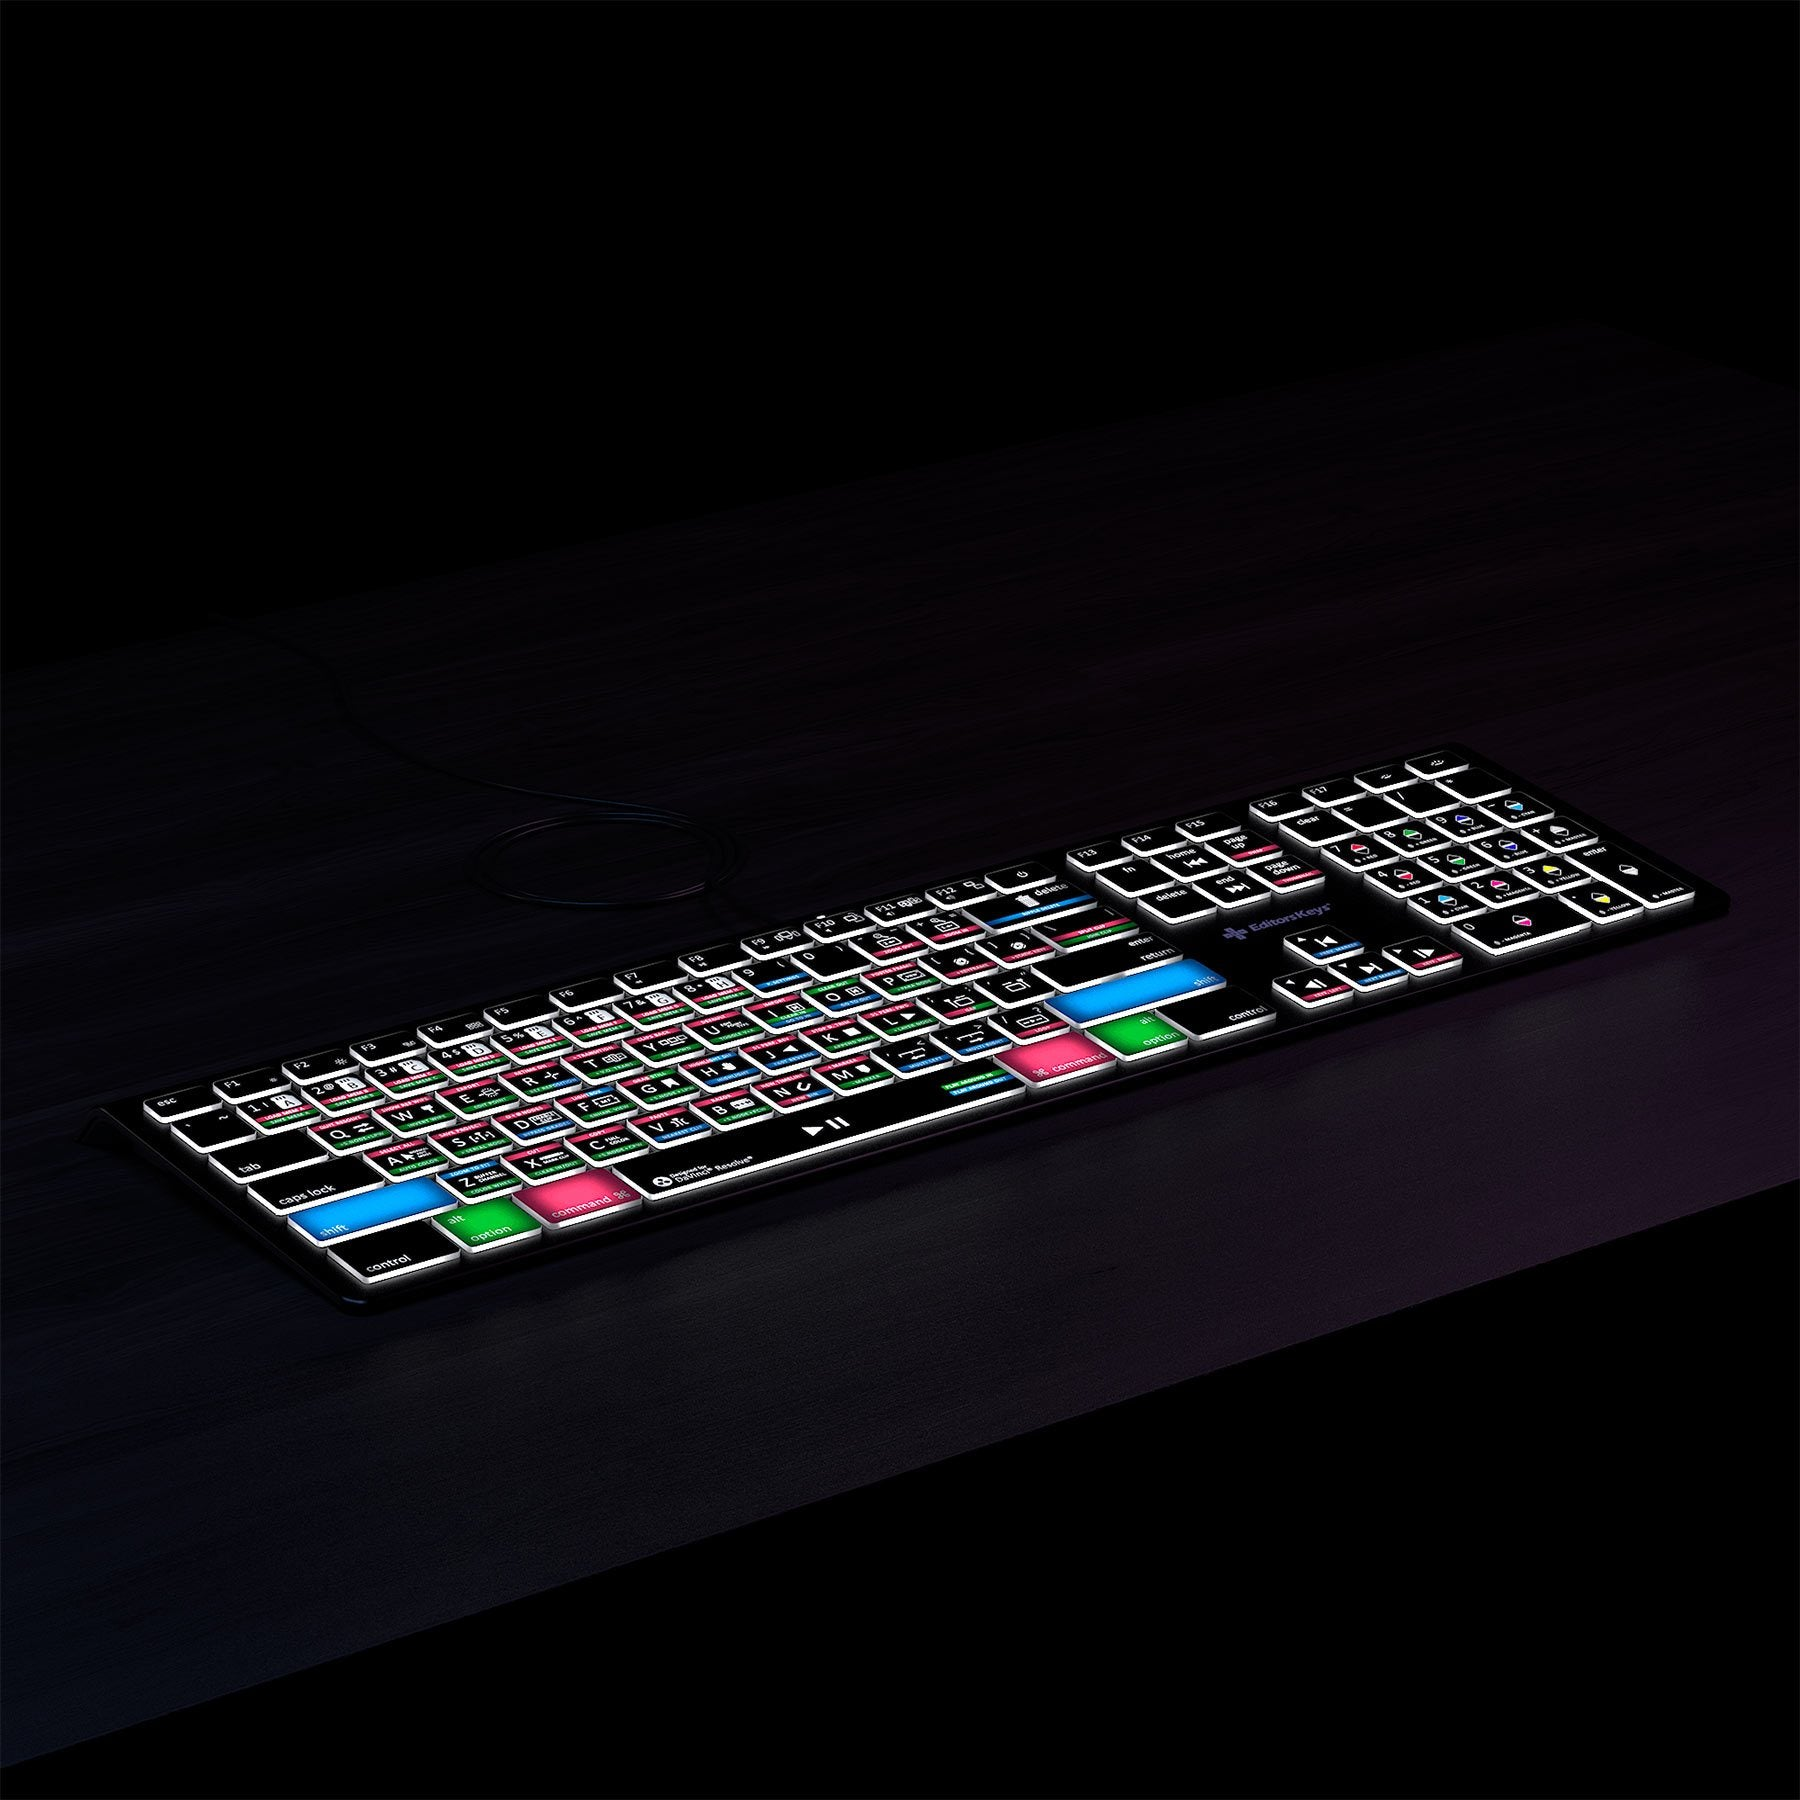 DaVinci Resolve 16 Keyboard - Backlit Mac or PC